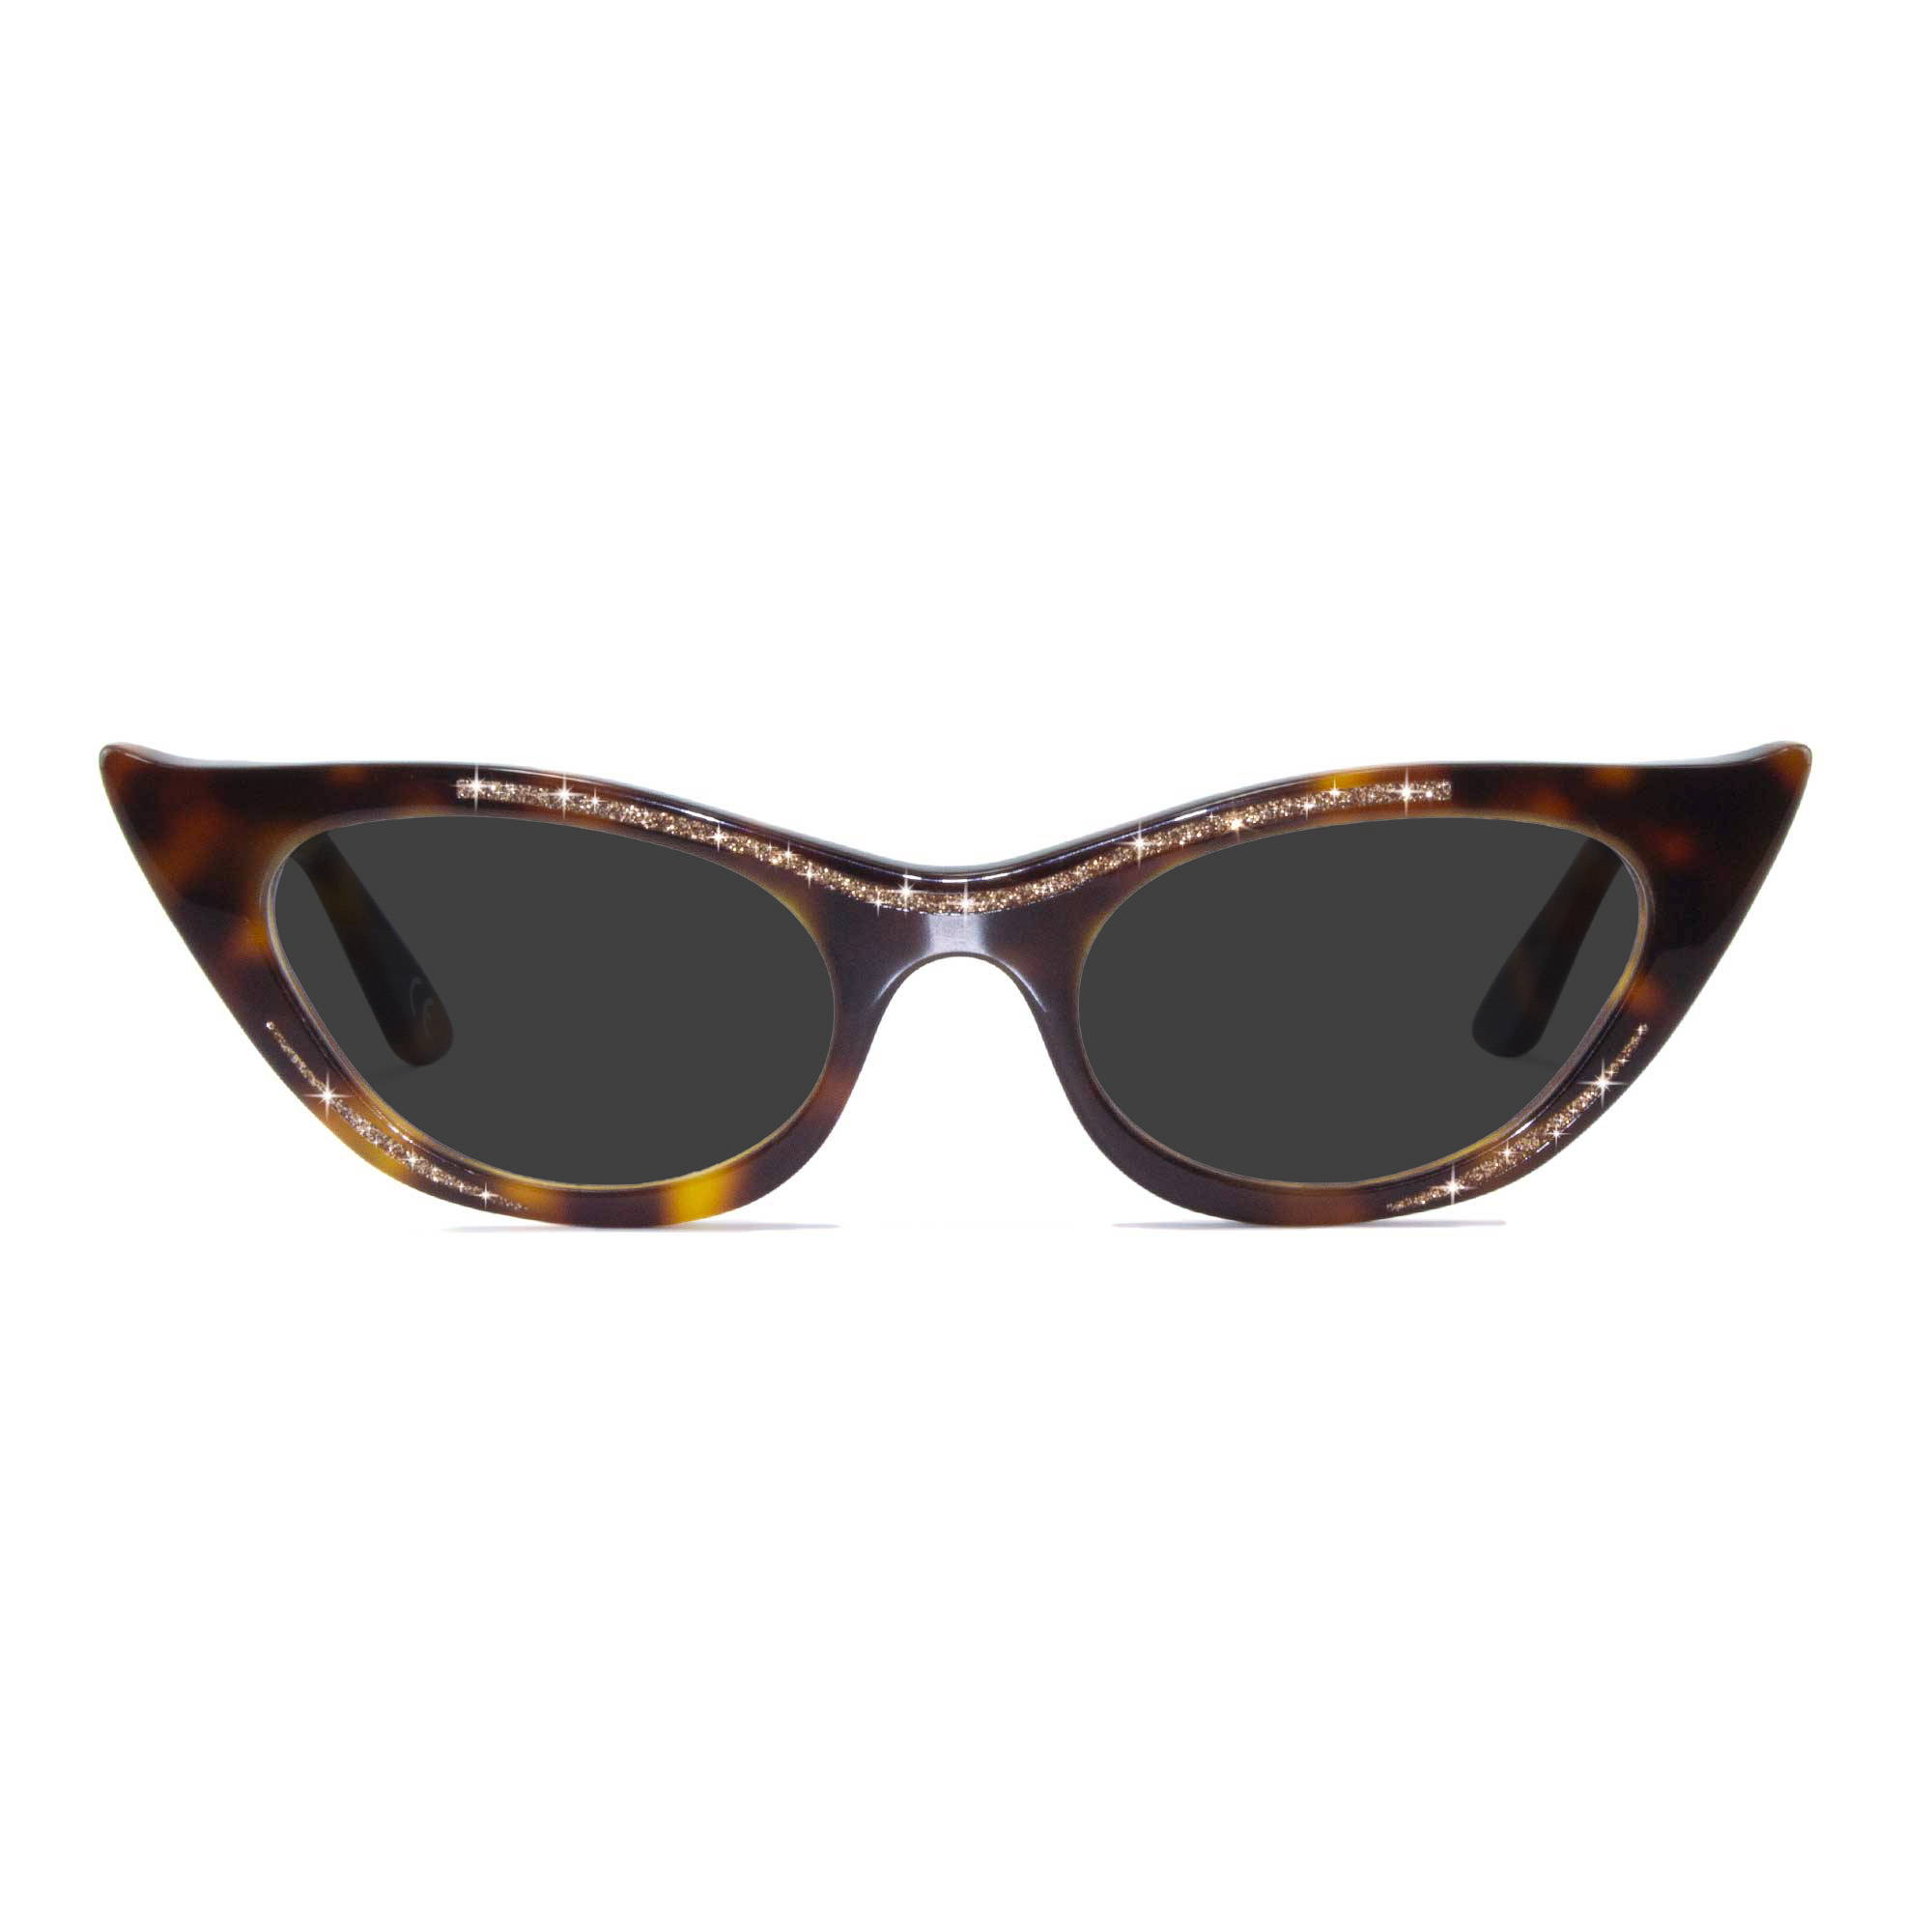 Joiuss lana tortoiseshell cat eye sunglasses